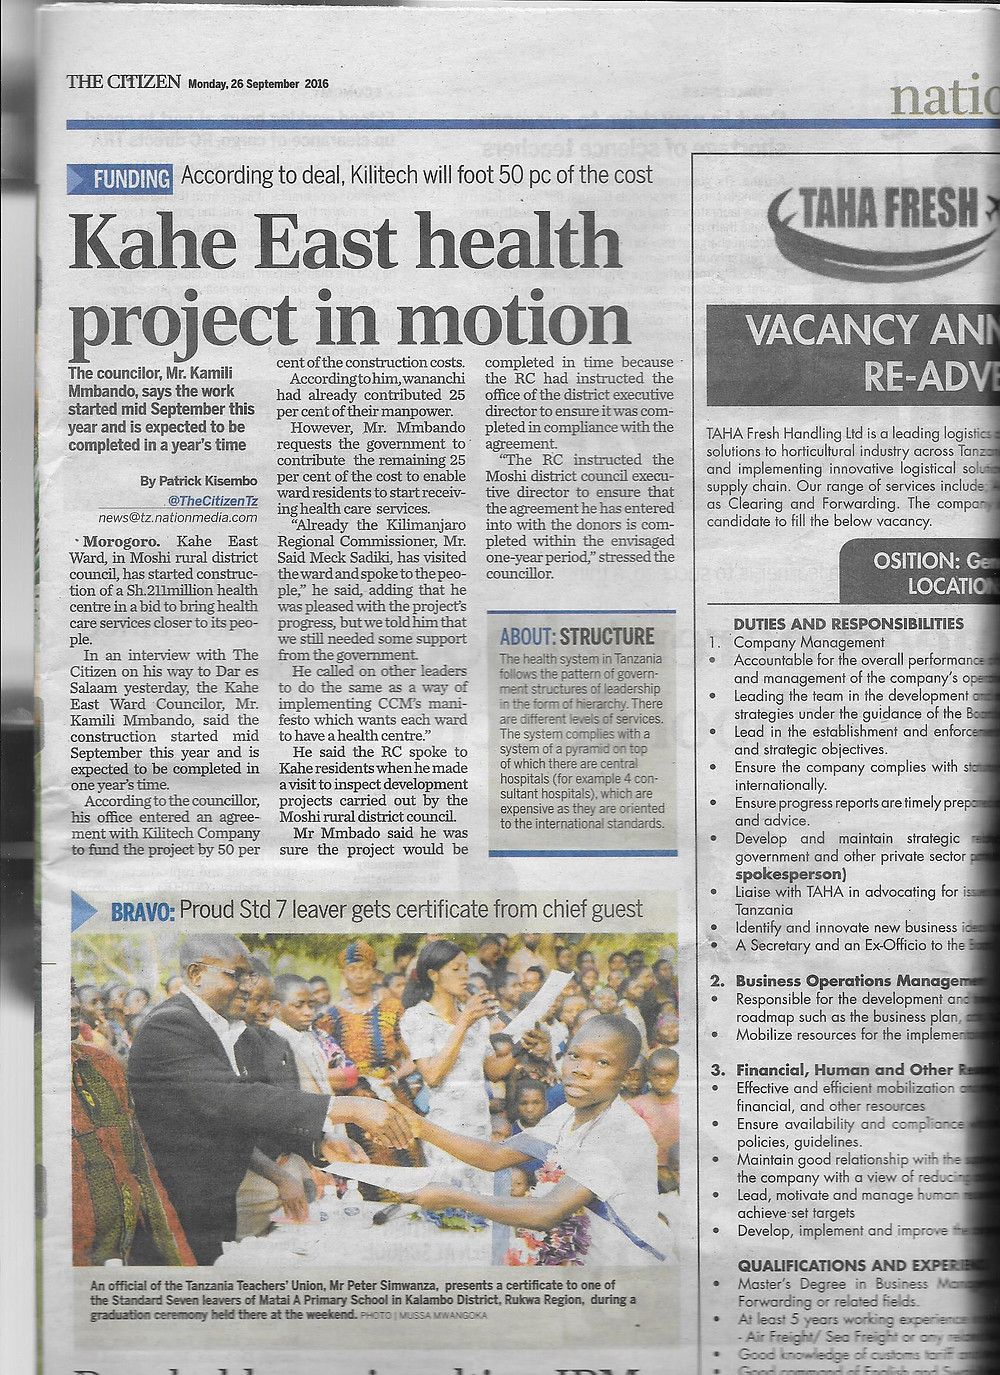 Article published 26 September in The Citizen, KiliTech building the health center